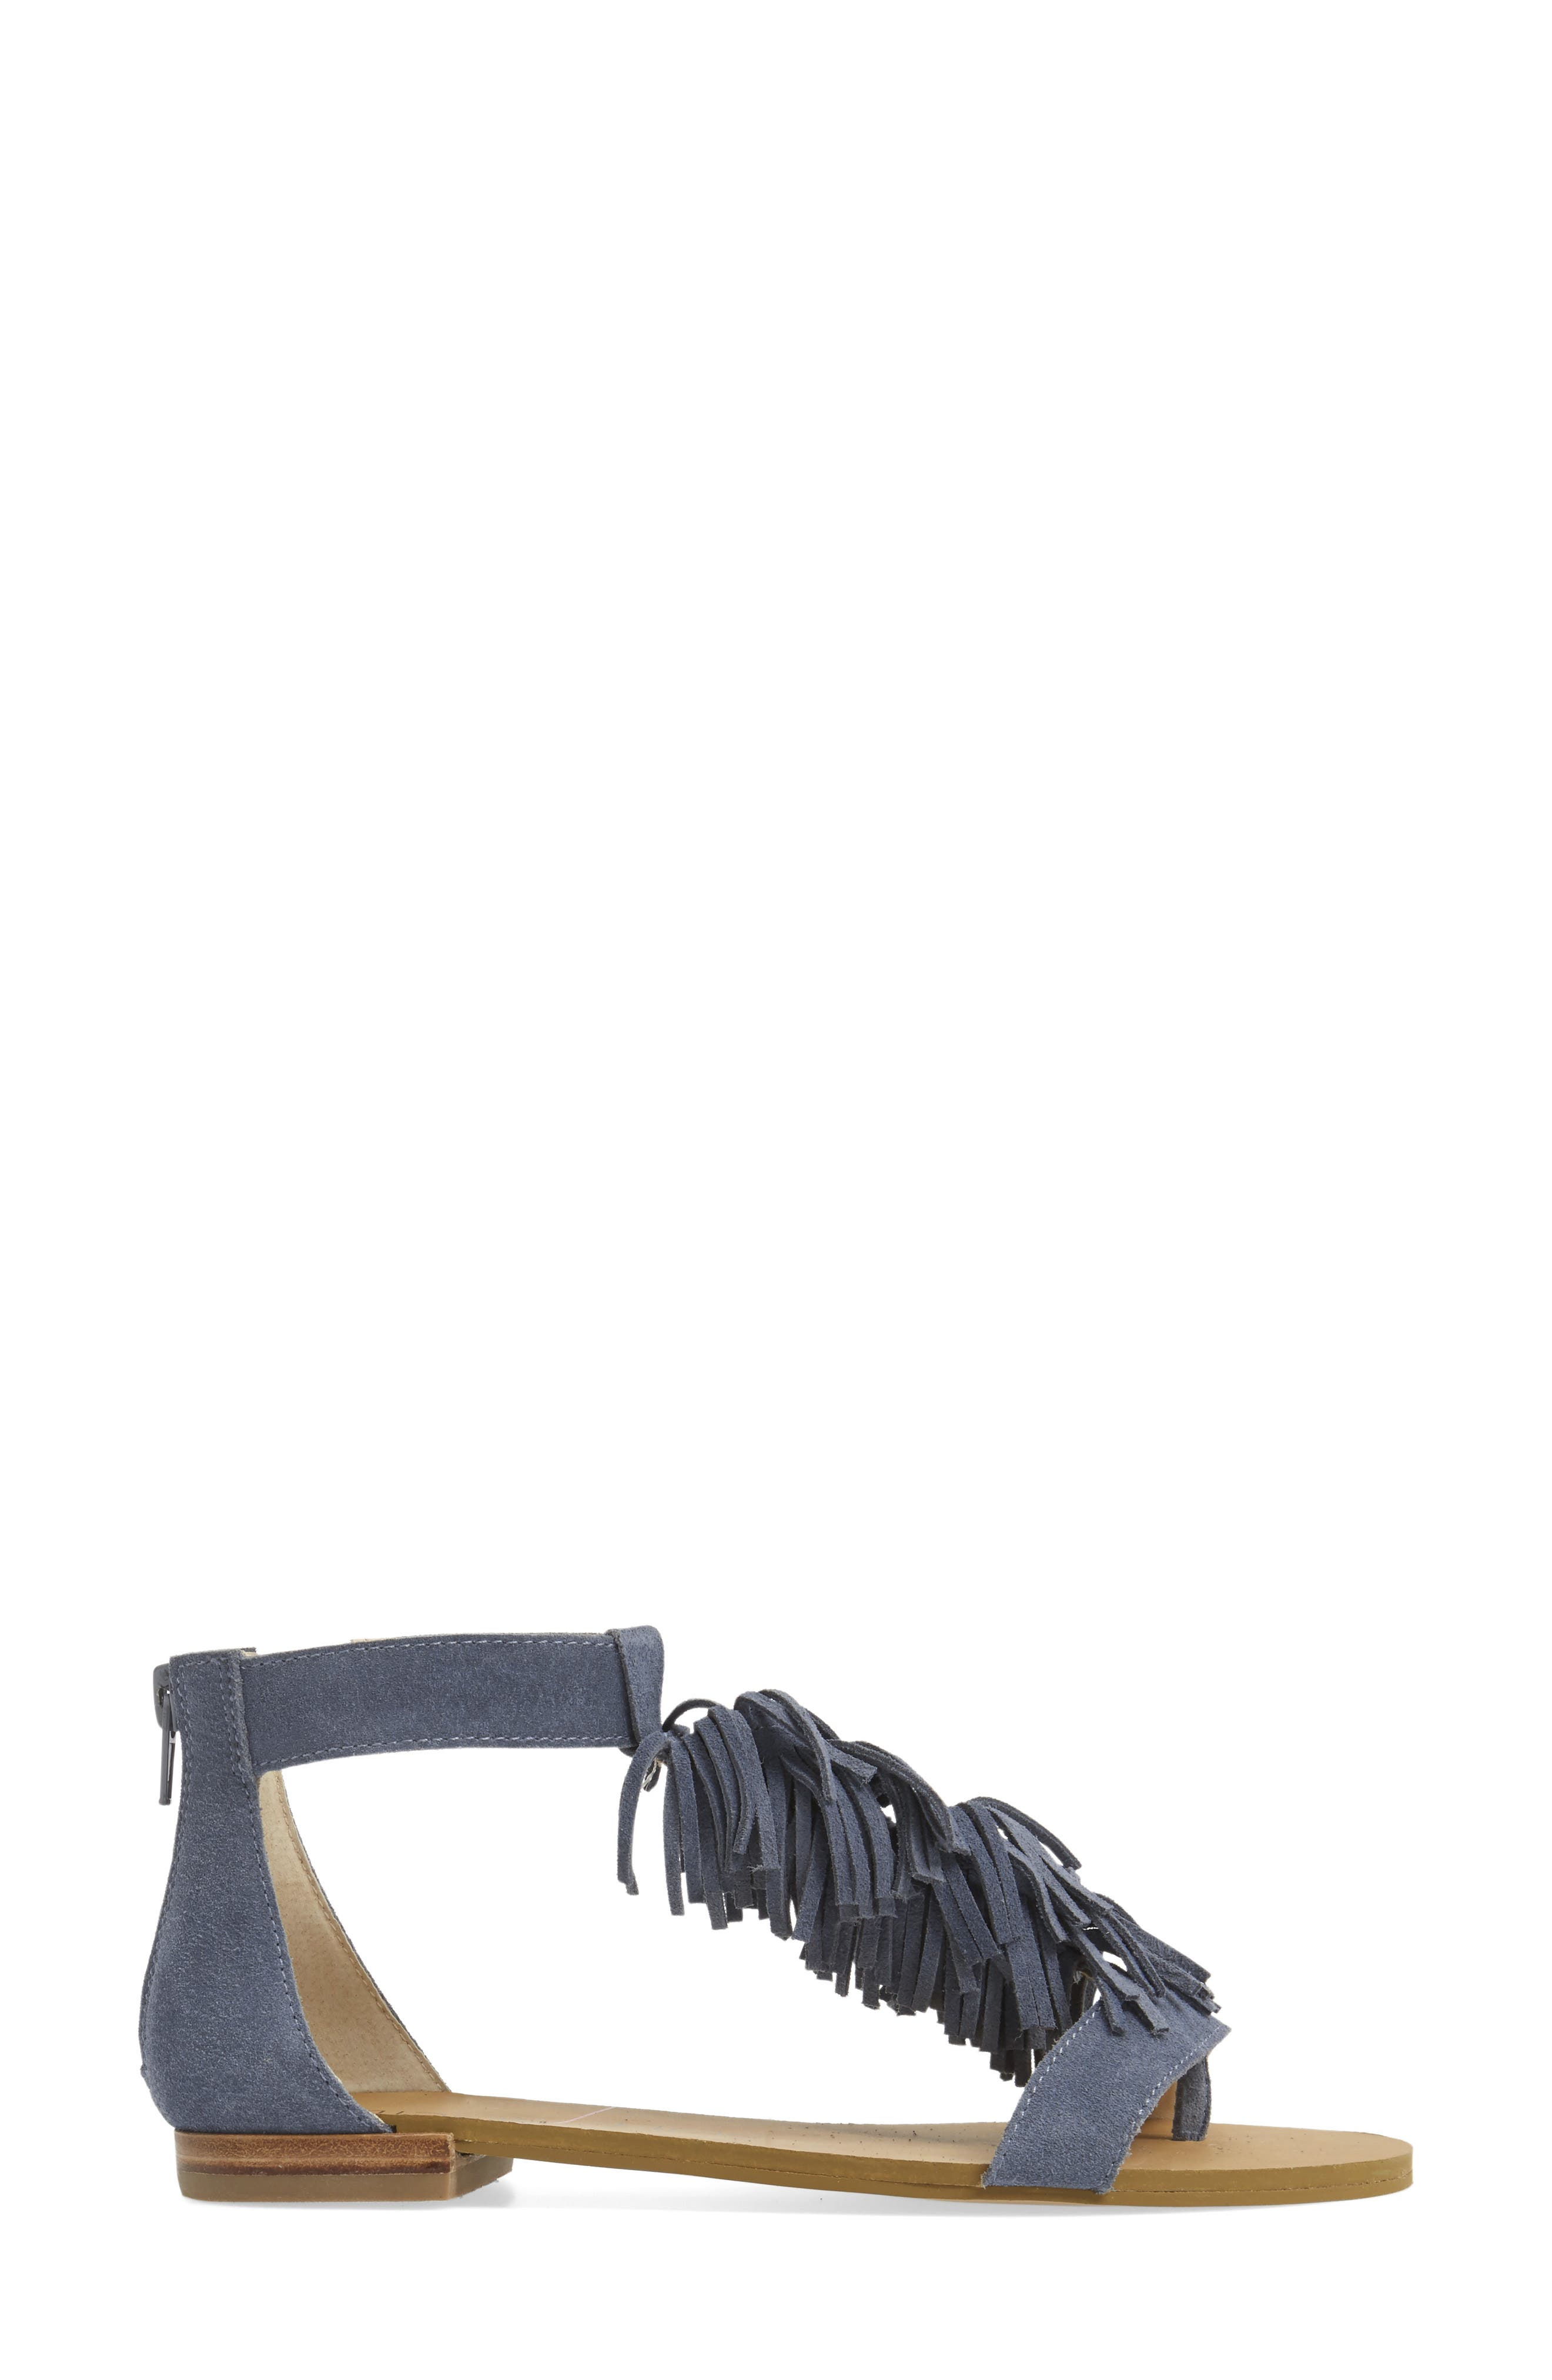 Alternate Image 3  - Sole Society Koa Fringed T-Strap Sandal (Women)